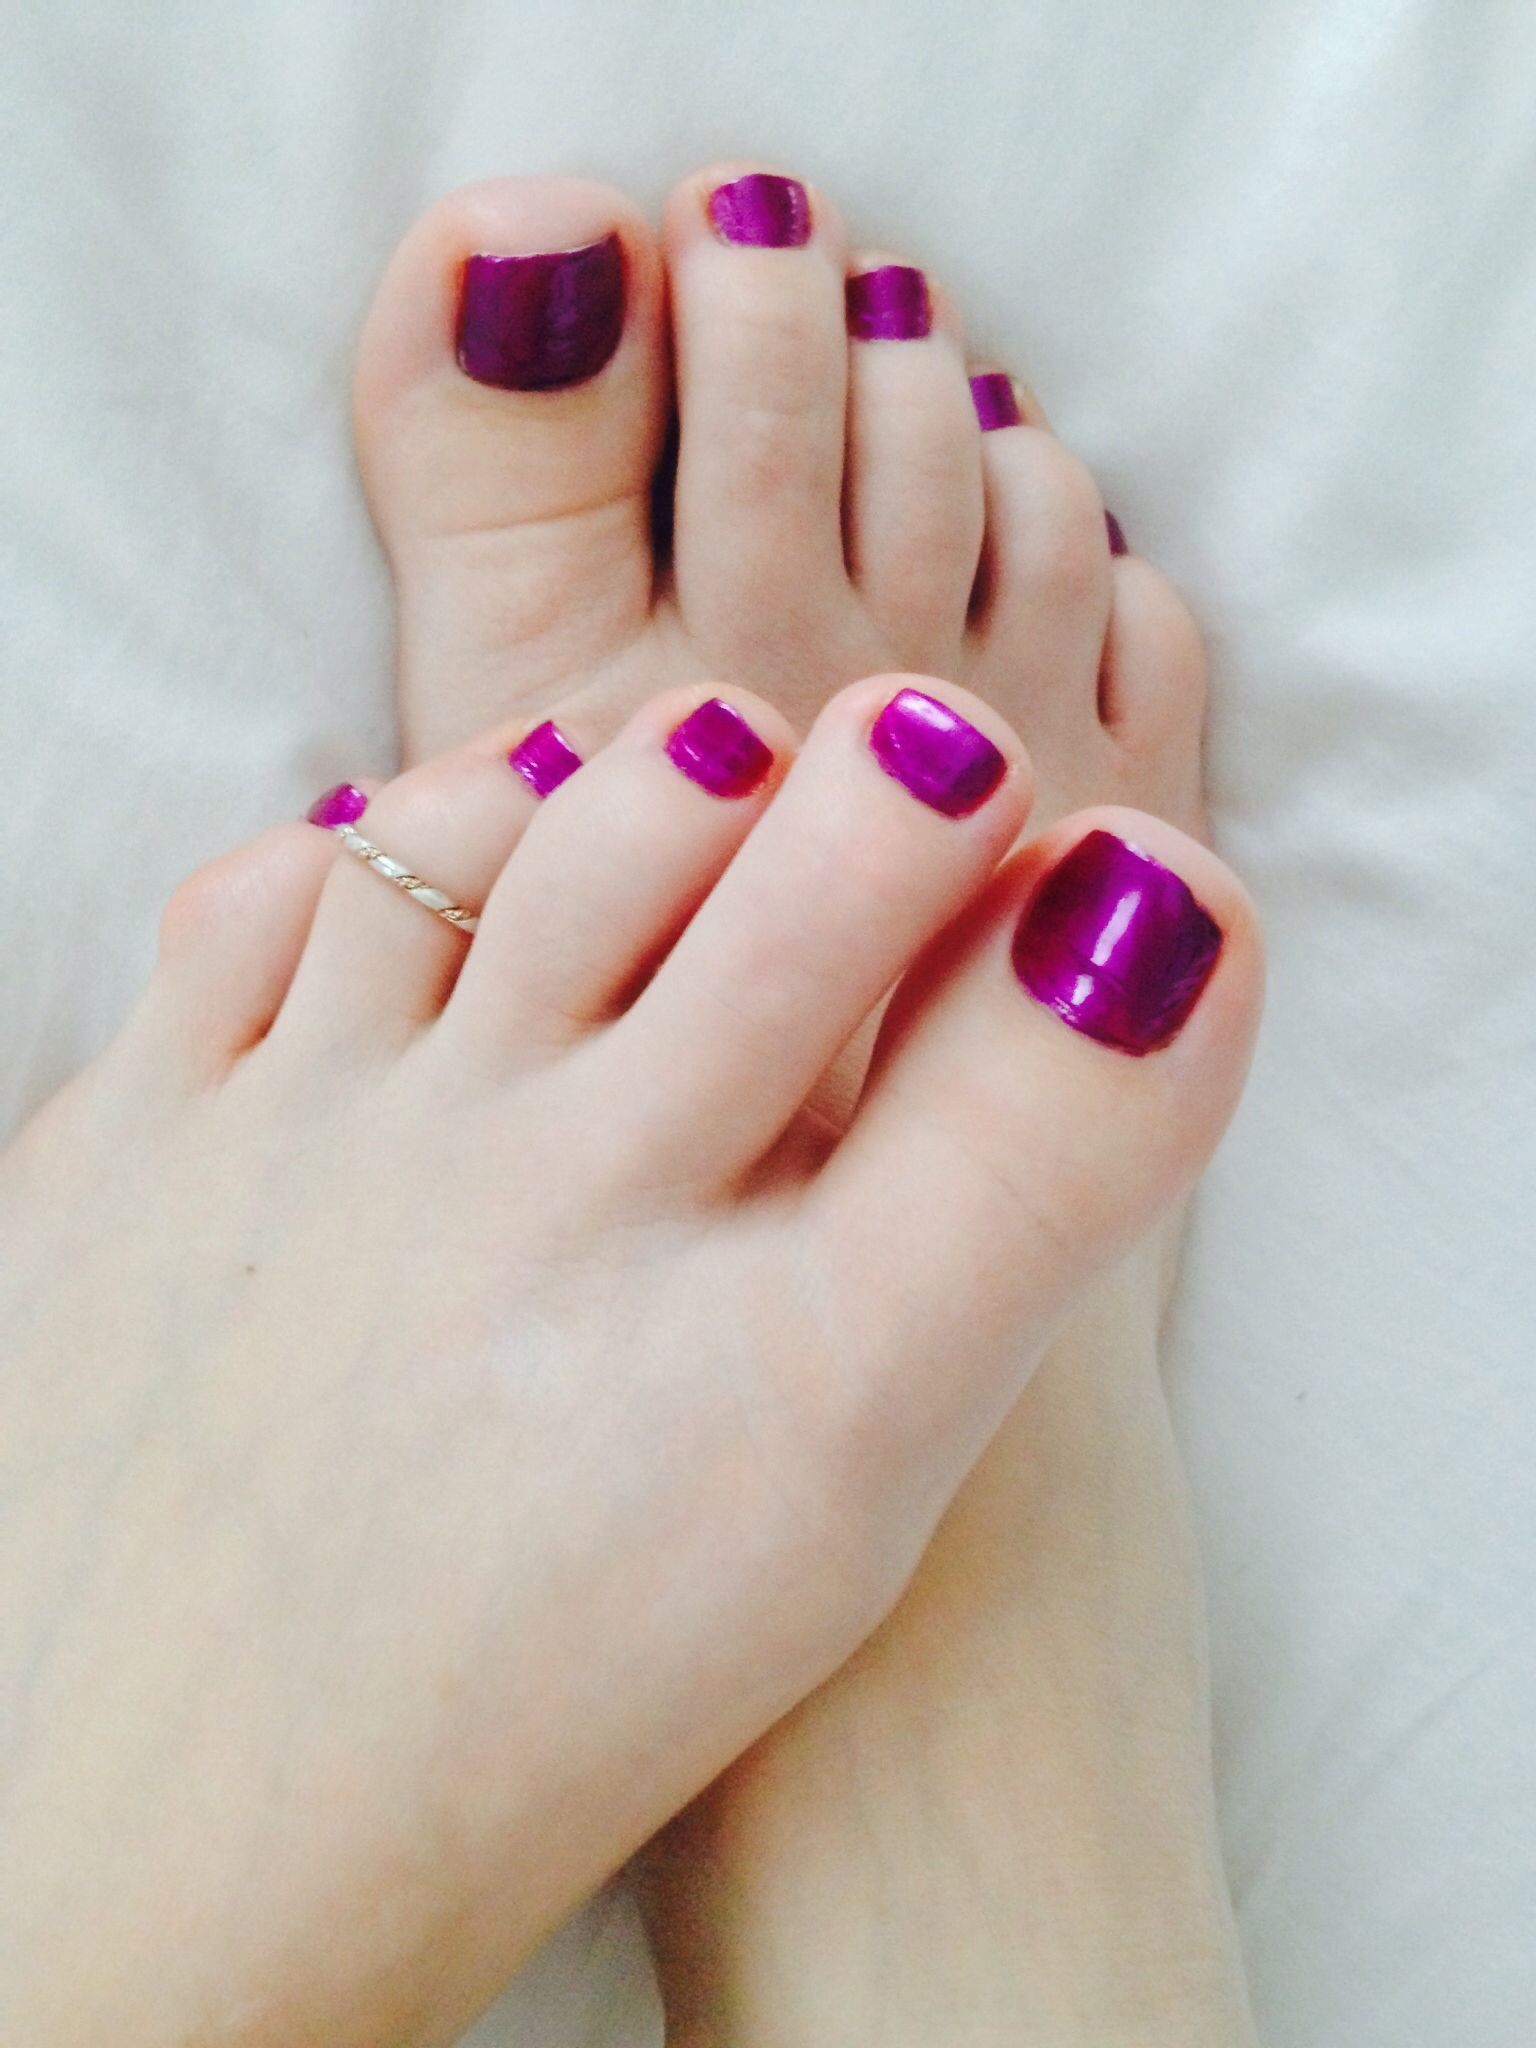 Love this Mardi Gras color | Girly | Pinterest | Mardi gras, Sexy ...